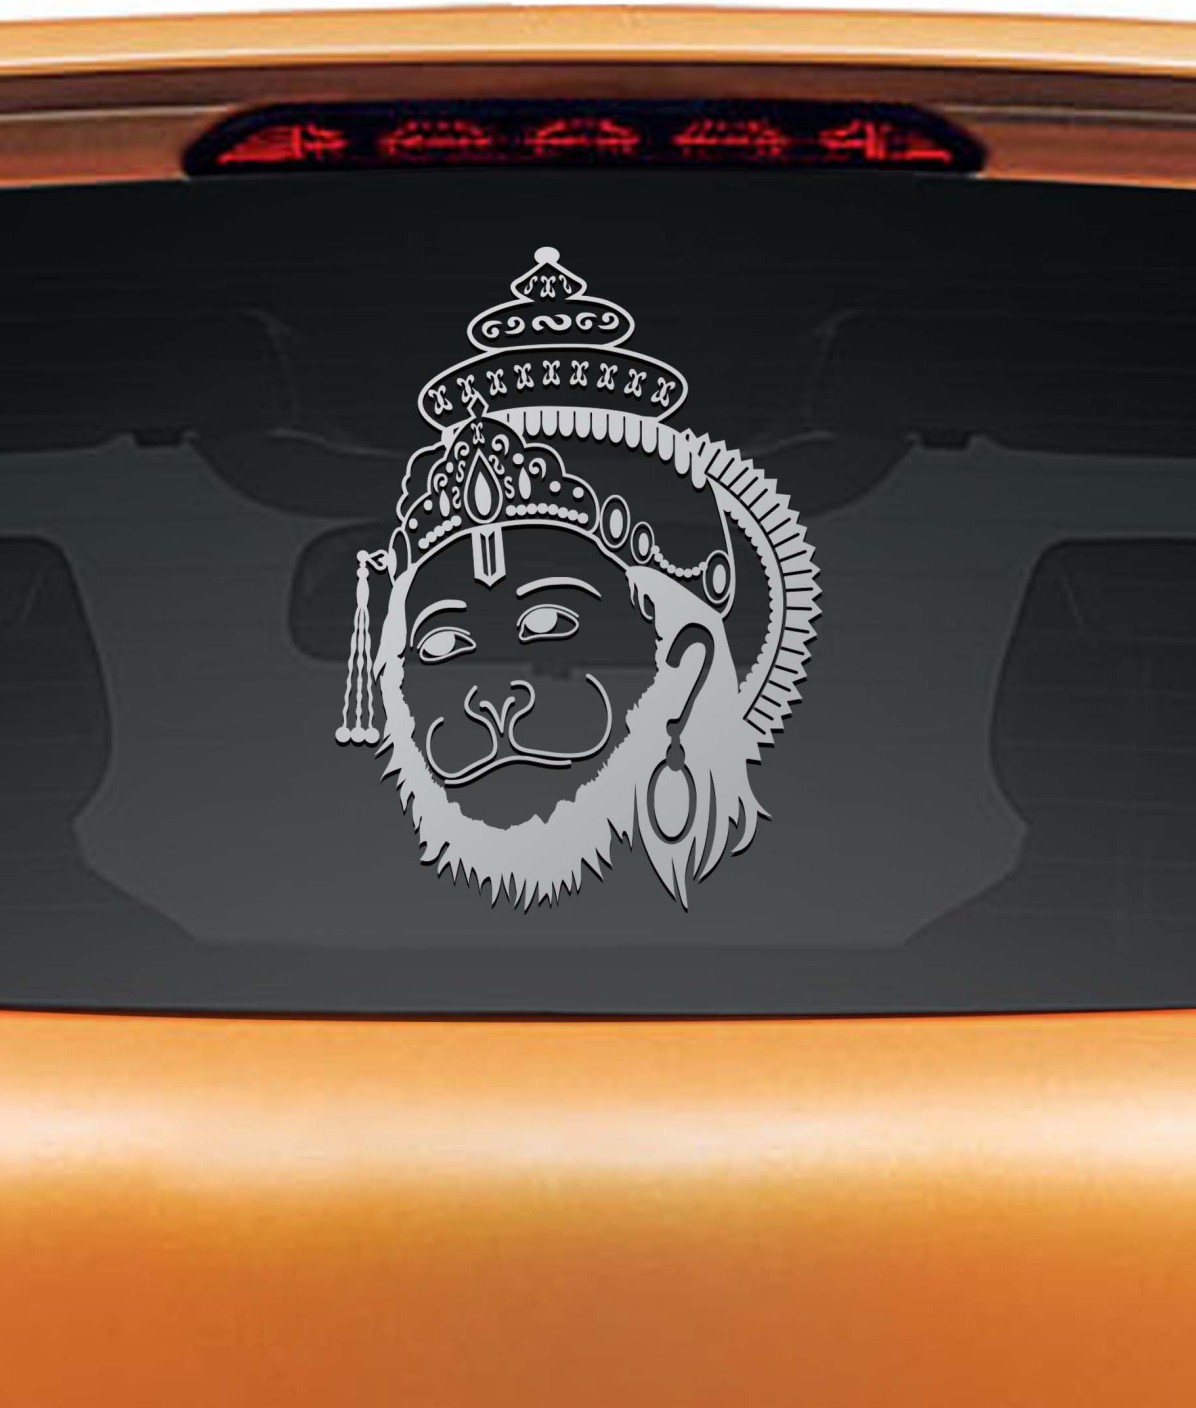 Car parking stickers design india - Wall Design Religious Sticker For Windows Add To Cart